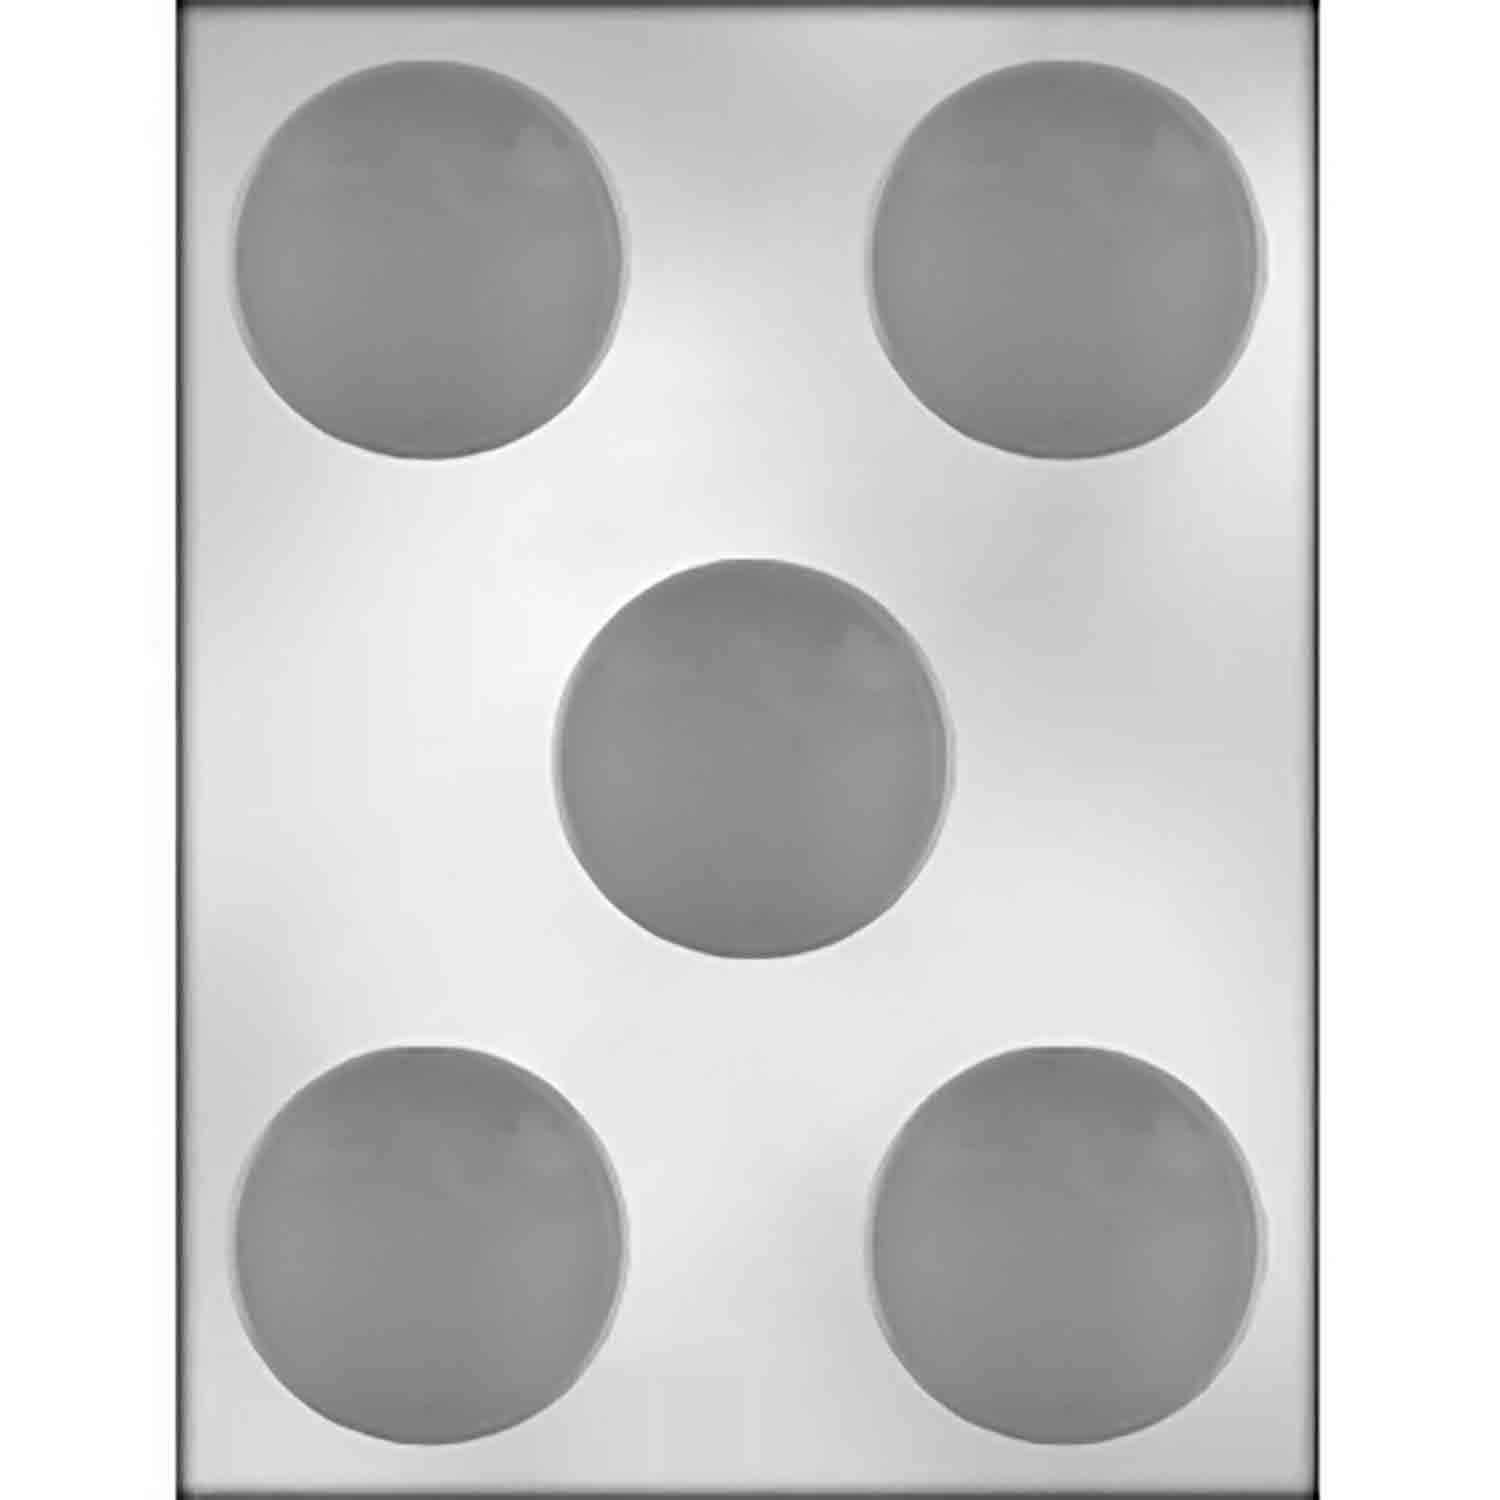 Plain Sandwich Cookie Chocolate Mold